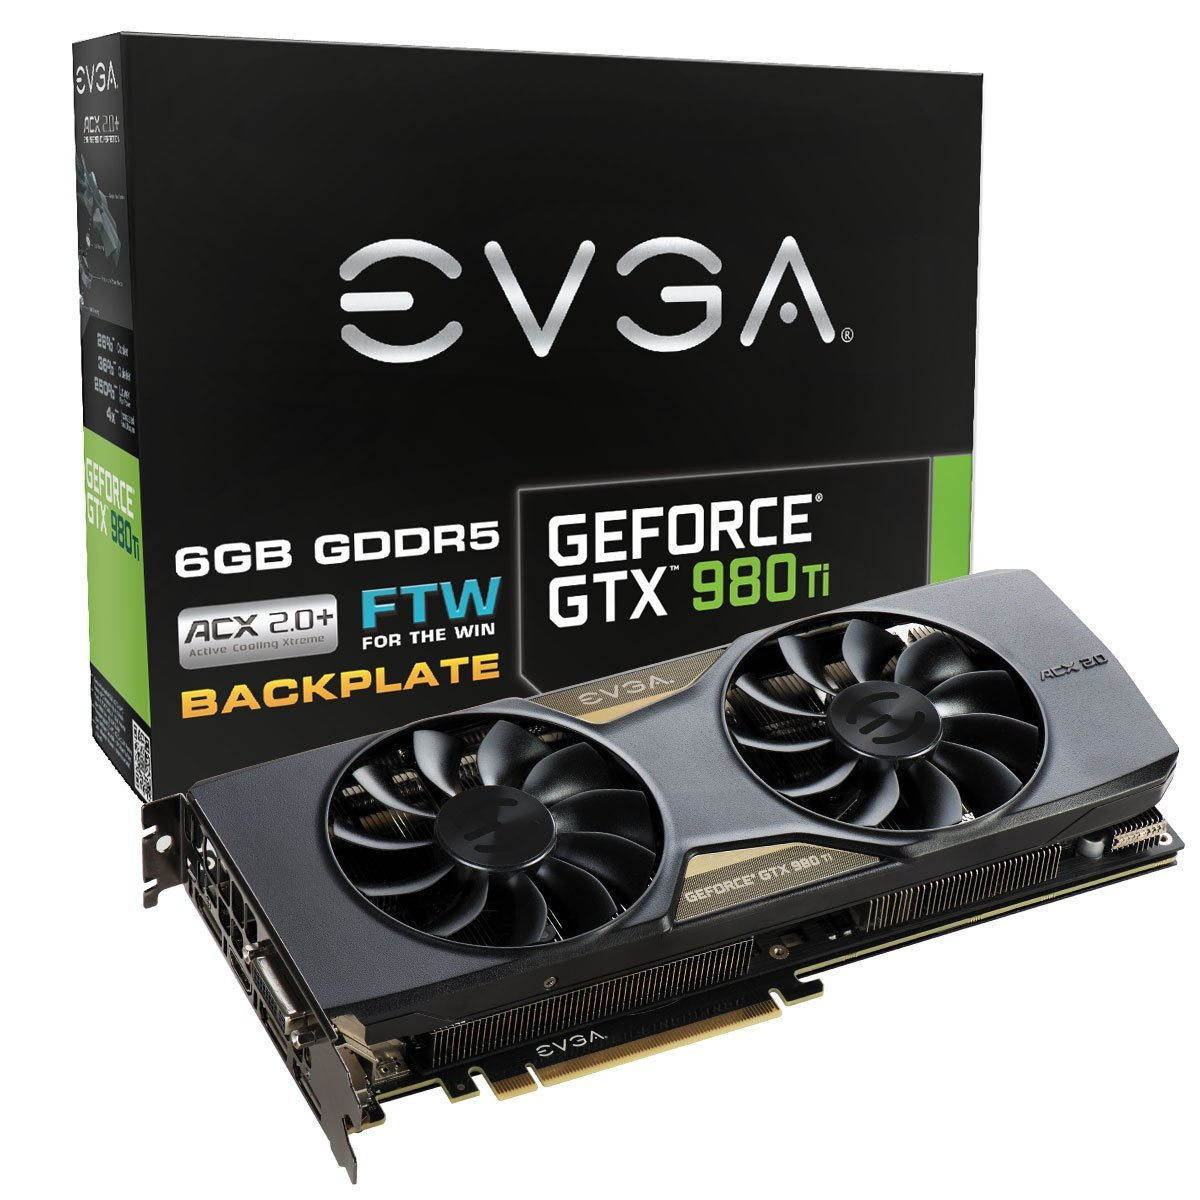 EVGA GeForce GTX 980 Ti 6GB FTW GAMING ACX 2.0+, Whisper Silent Cooling w/ Free Installed Backplate